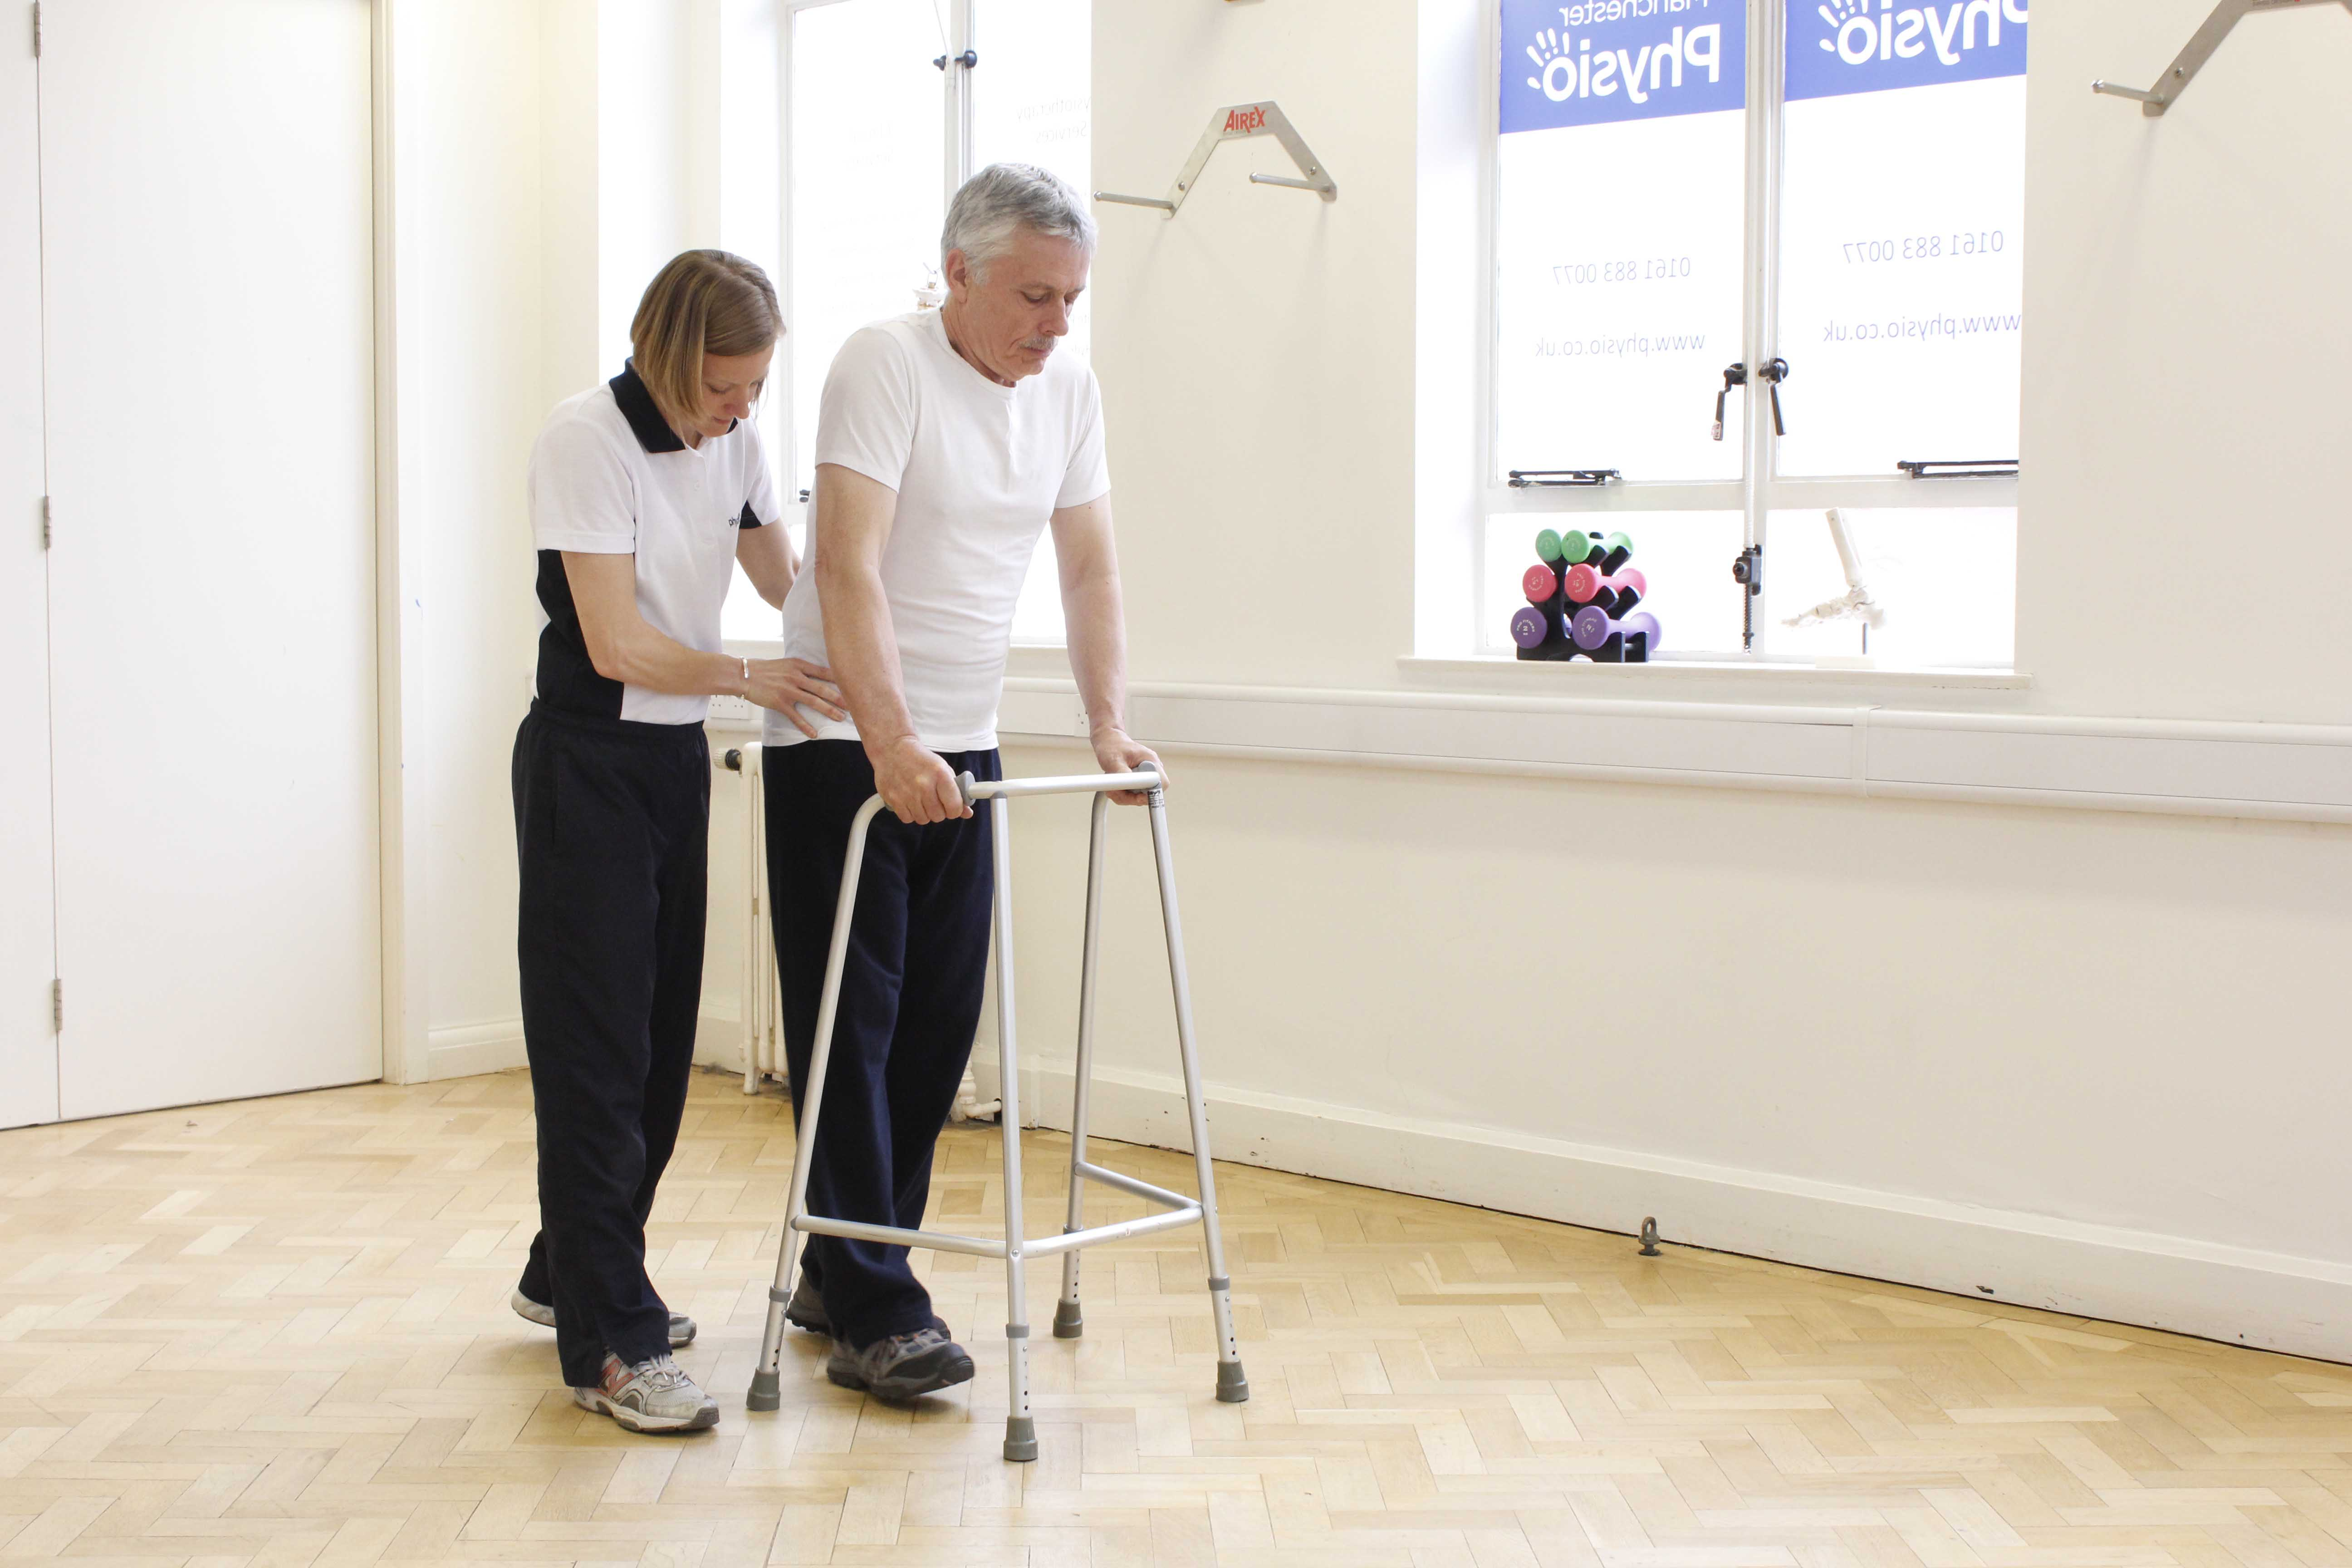 Physiotherapist supervising mobilisation using a walking frame